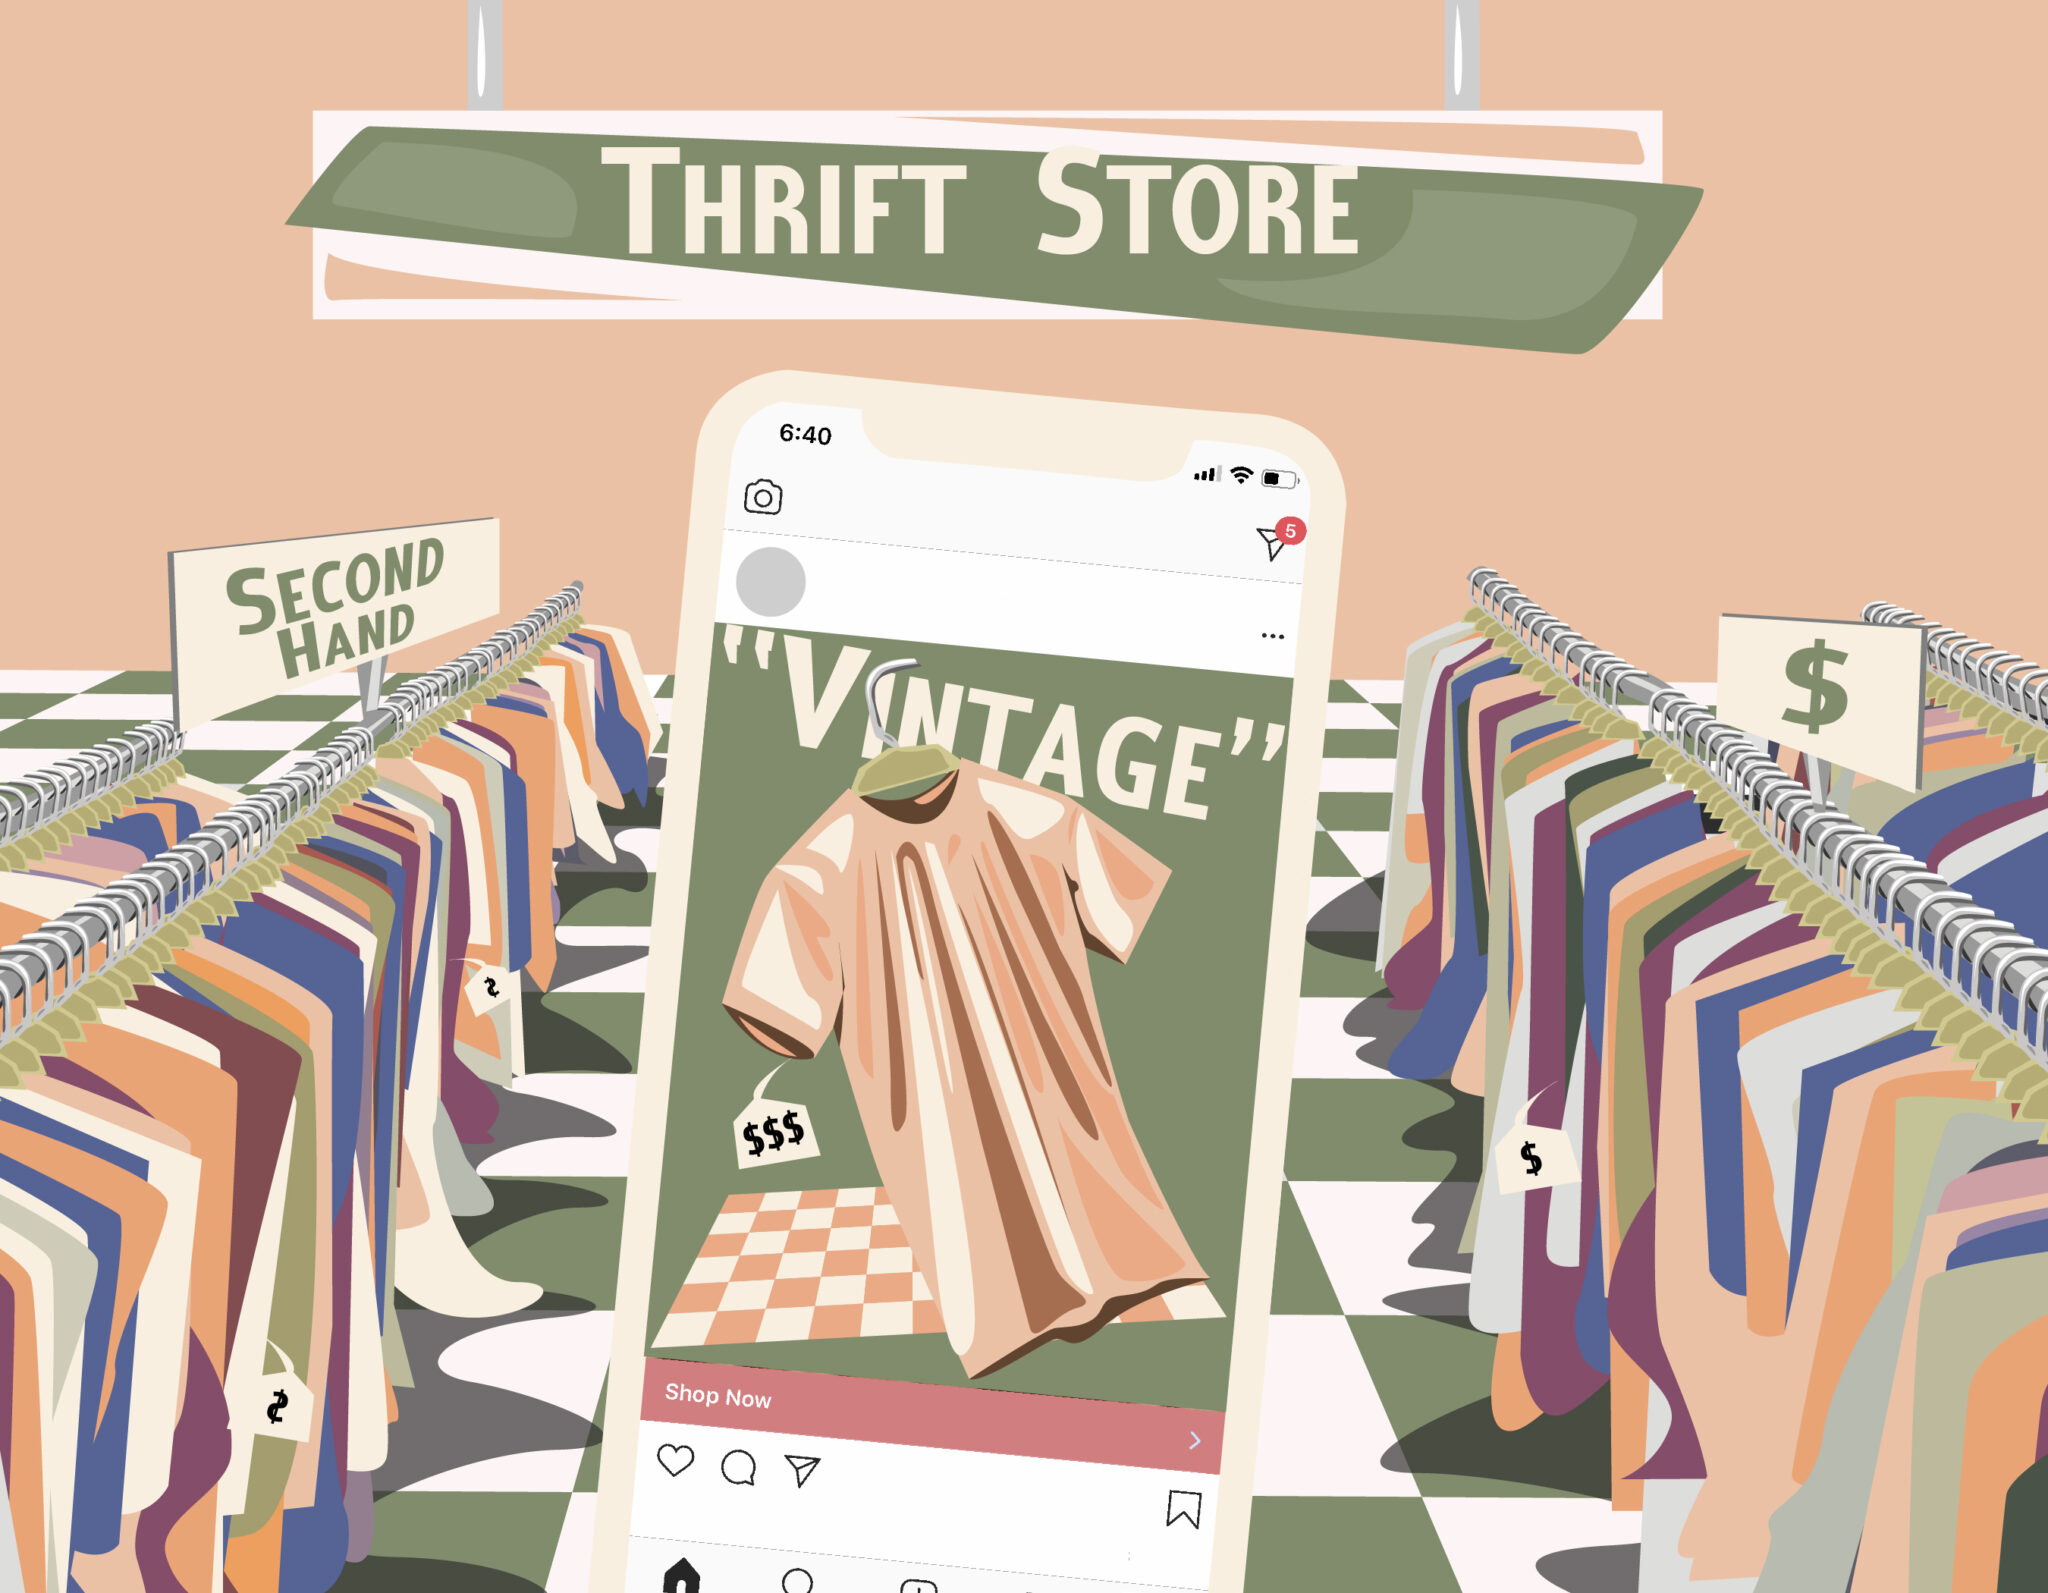 "Illustration of a phone featuring an Instagram post of a tee shirt labelled ""Vintage"" with a high price tag. The background depicts a thrift store with racks of lower price, second hand clothing."